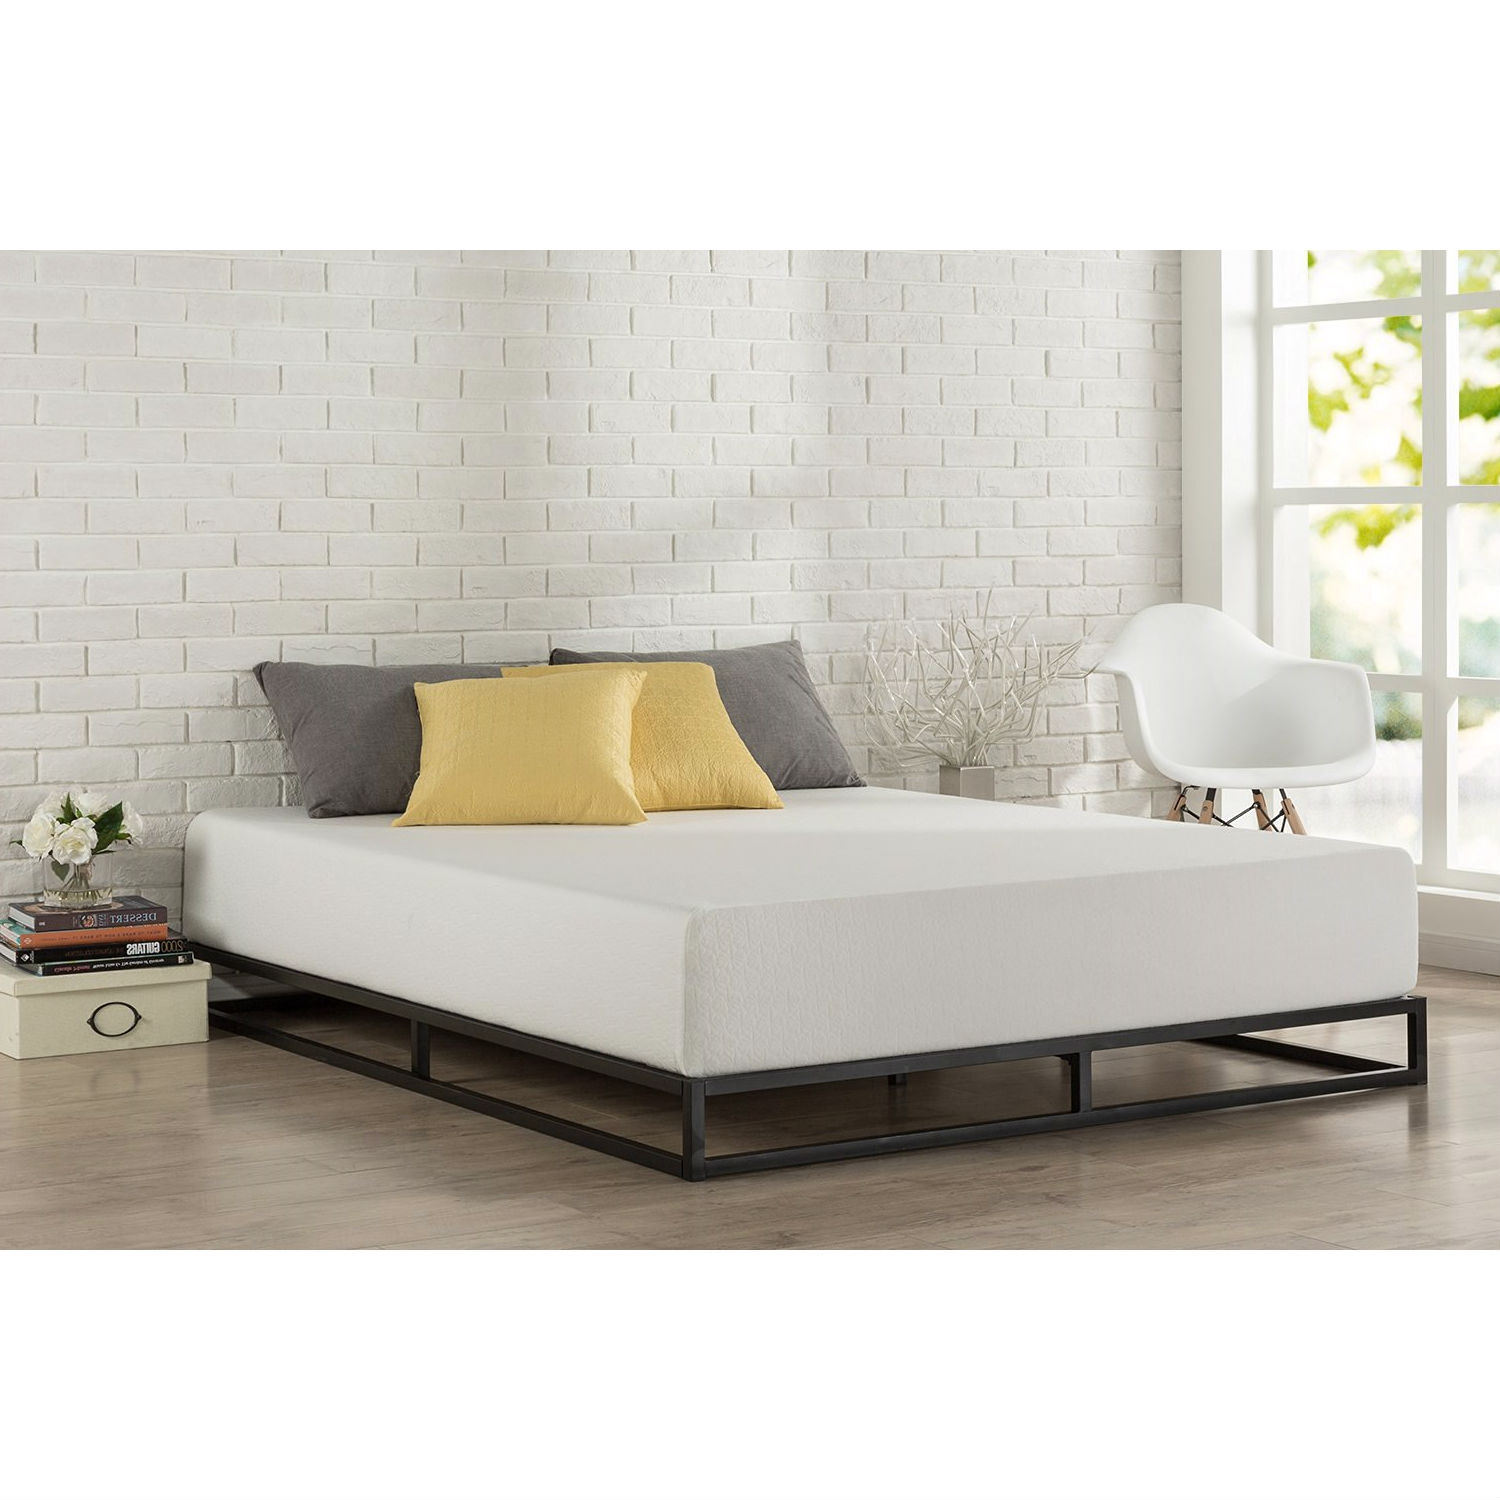 Queen Size 6 Inch Low Profile Metal Platform Bed Frame